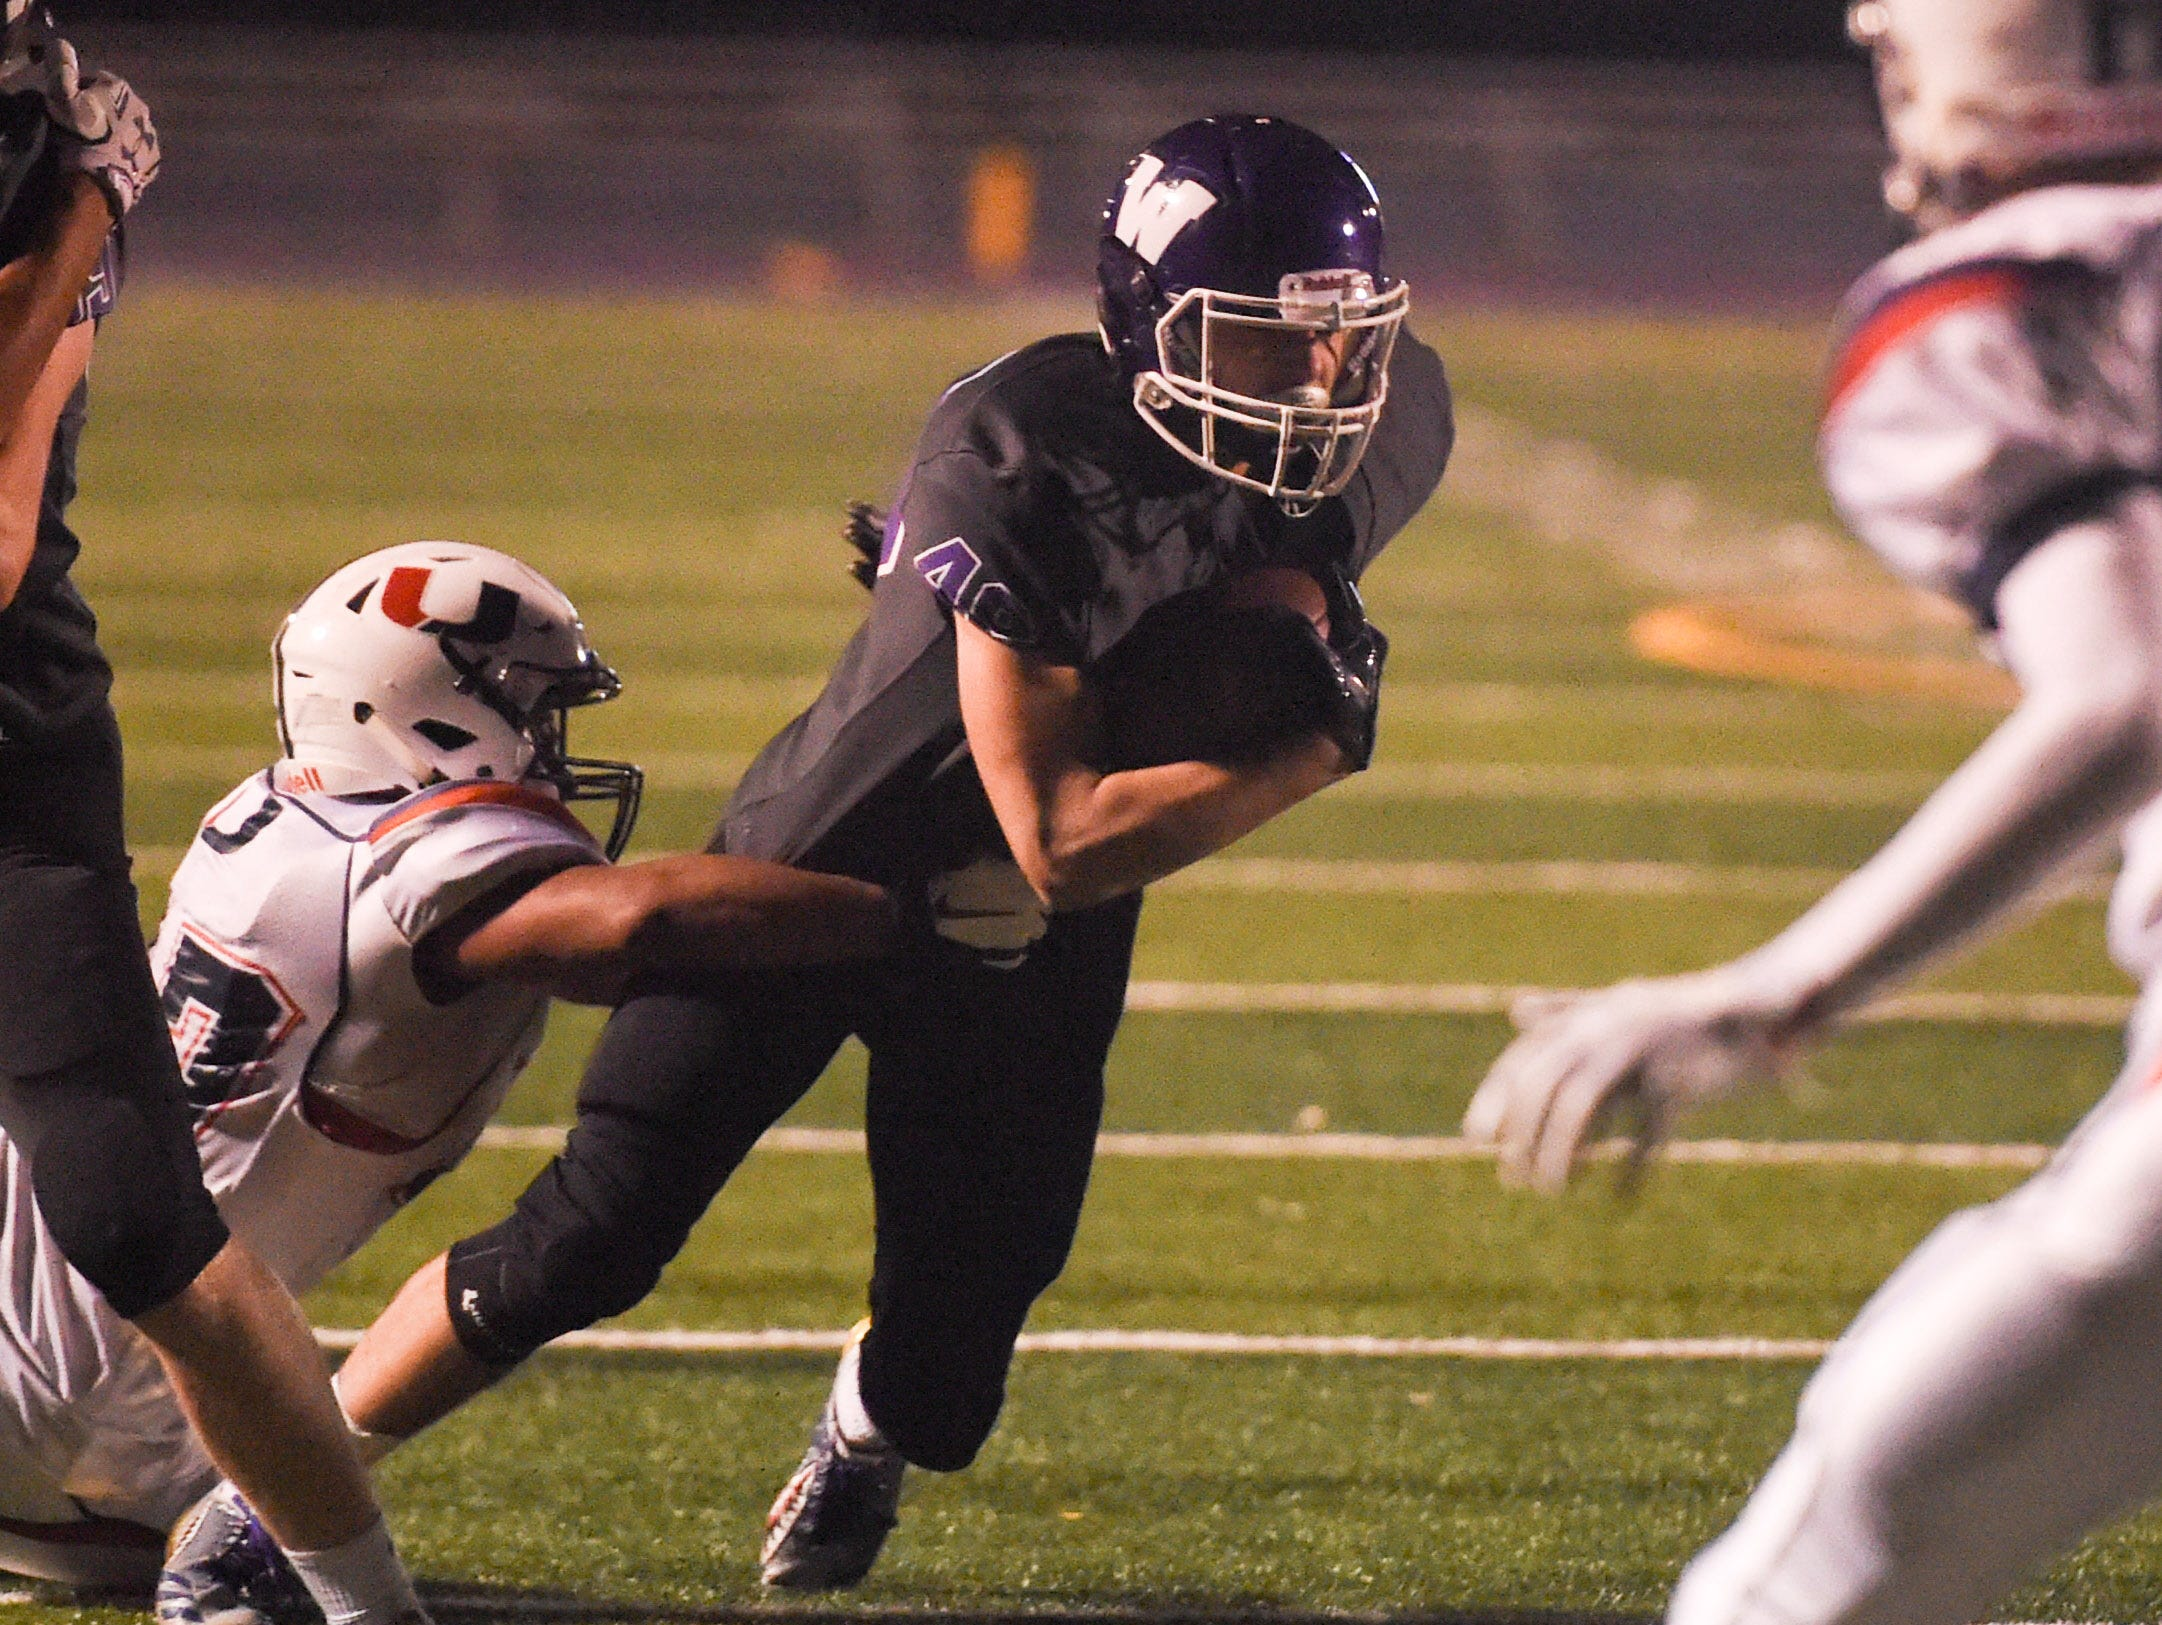 Waukee's Alex Linquist (49) carries the ball on Friday, Oct. 26, 2018 during a playoff game between the Waukee Warriors and the Urbandale J-Hawks at Waukee High School.